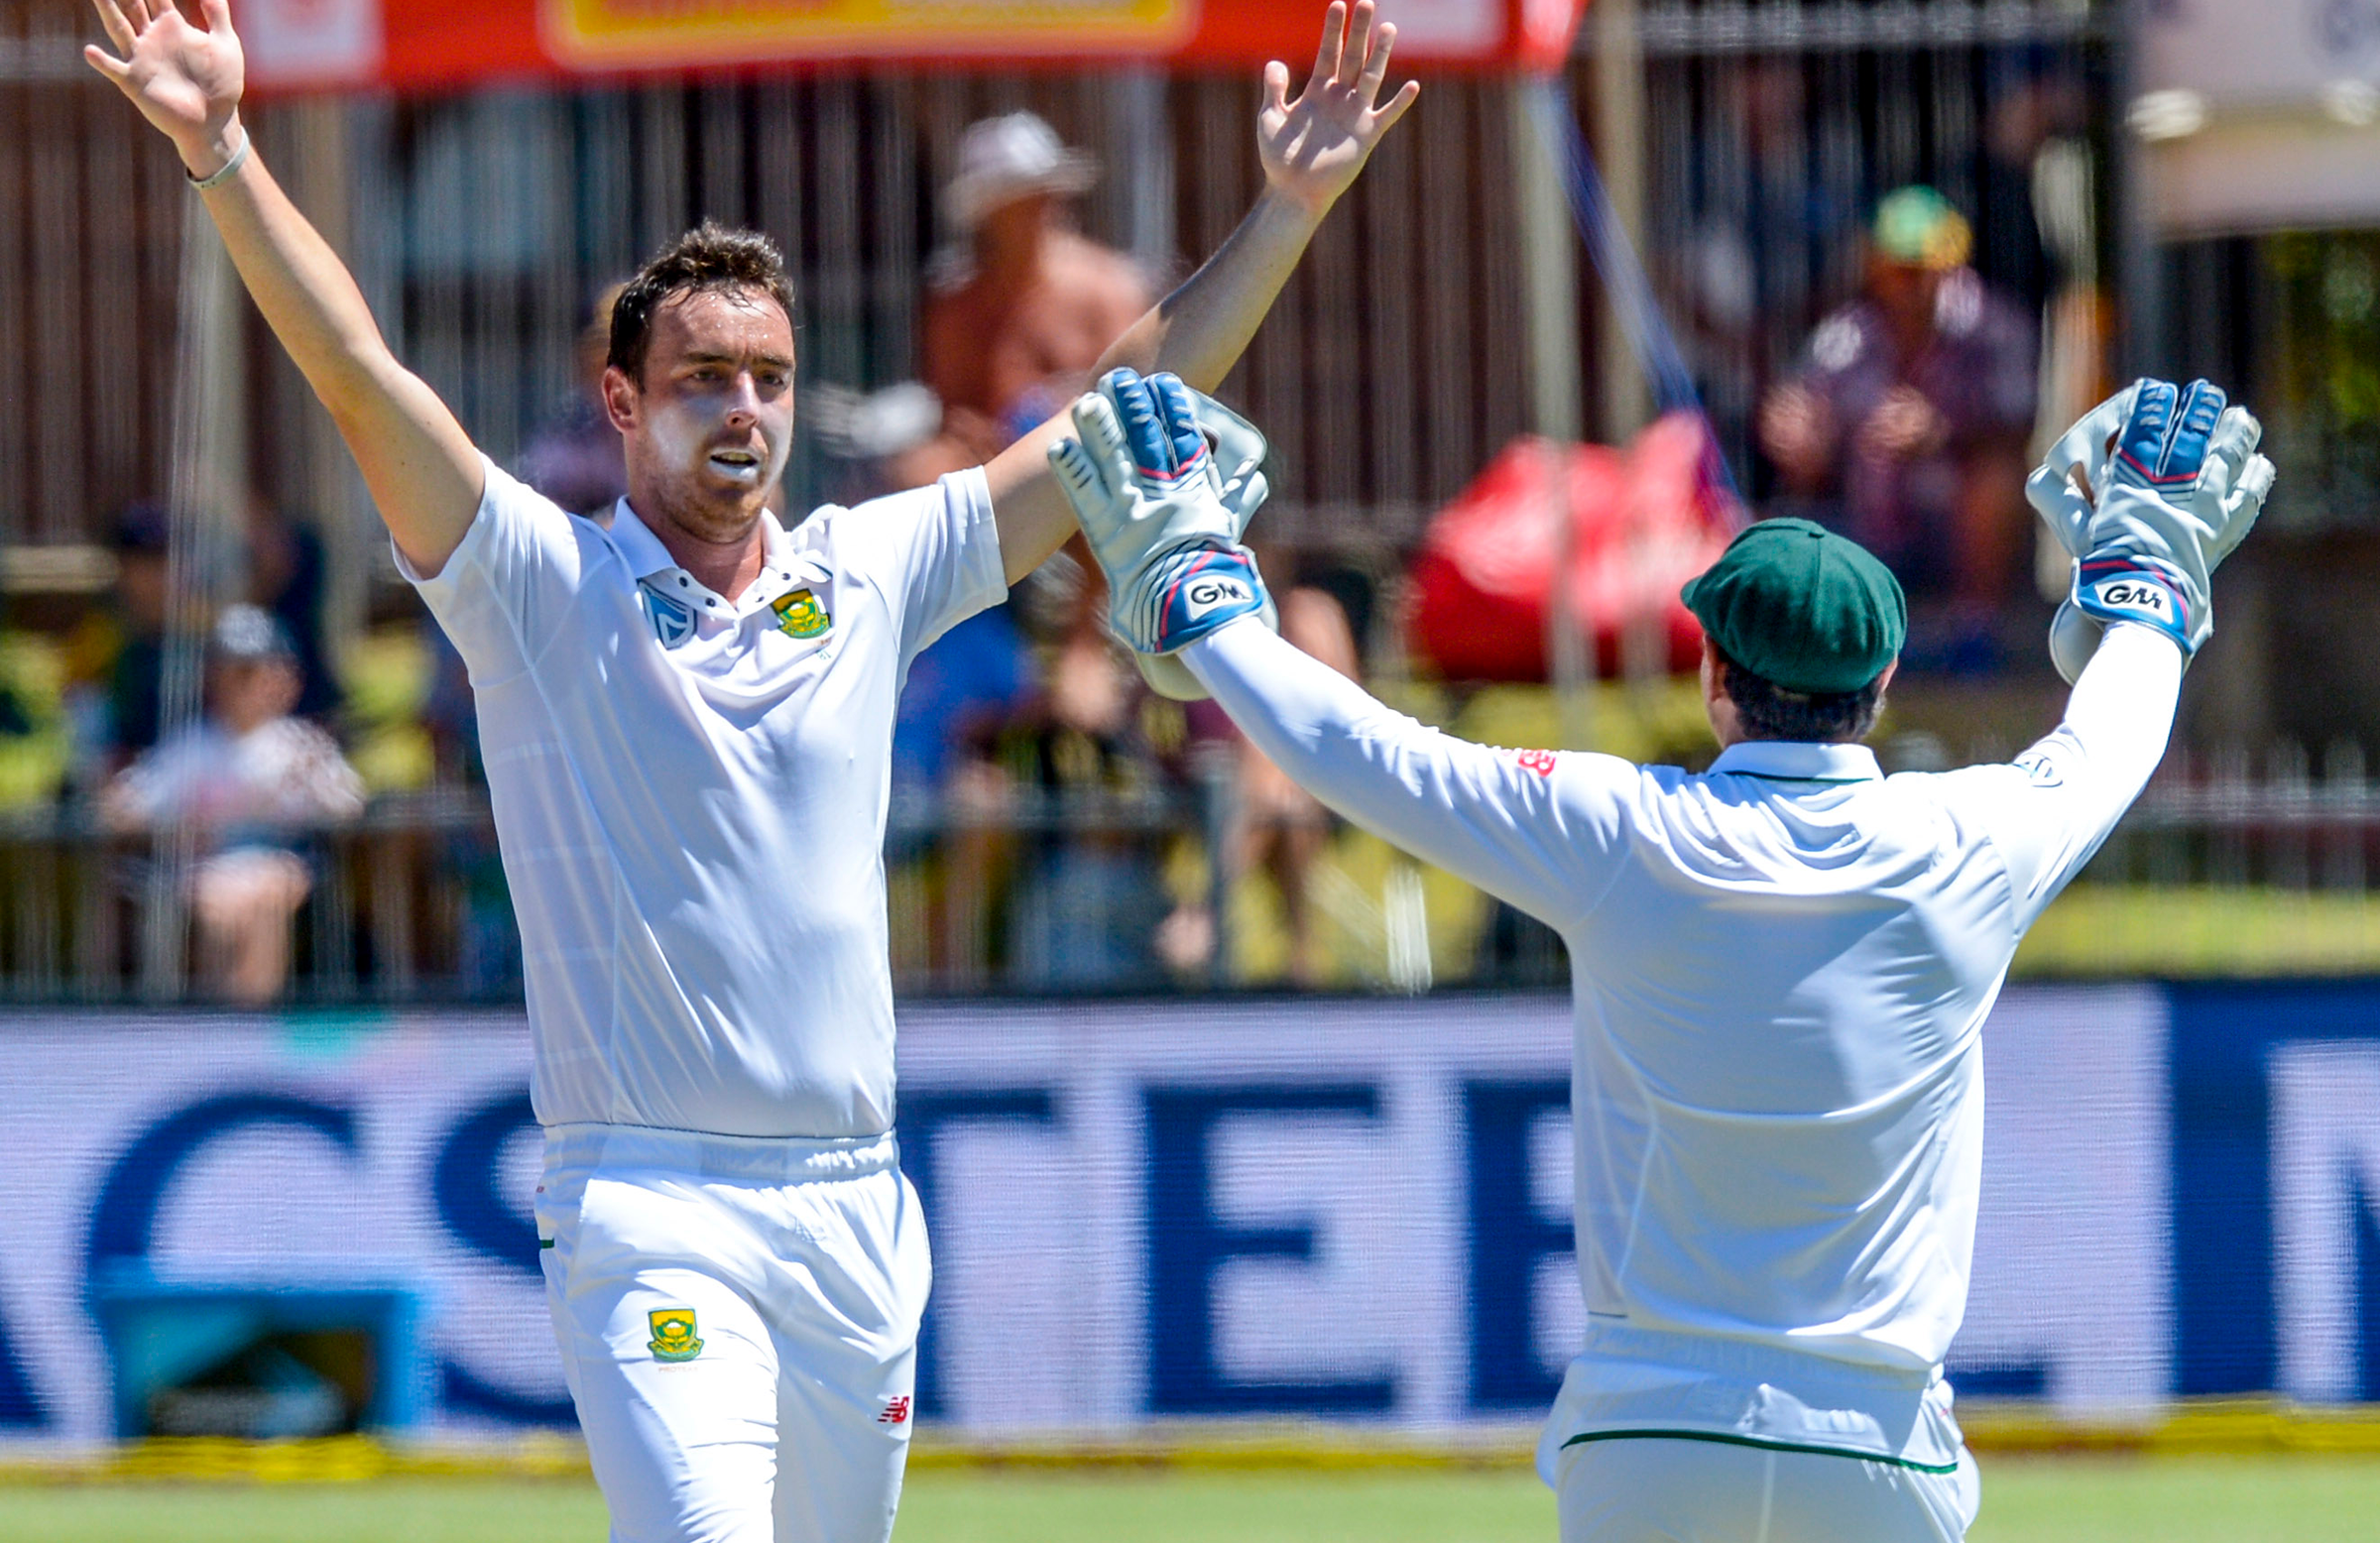 Kyle Abbott signs Kolpak deal with Hampshire, ends South Africa career